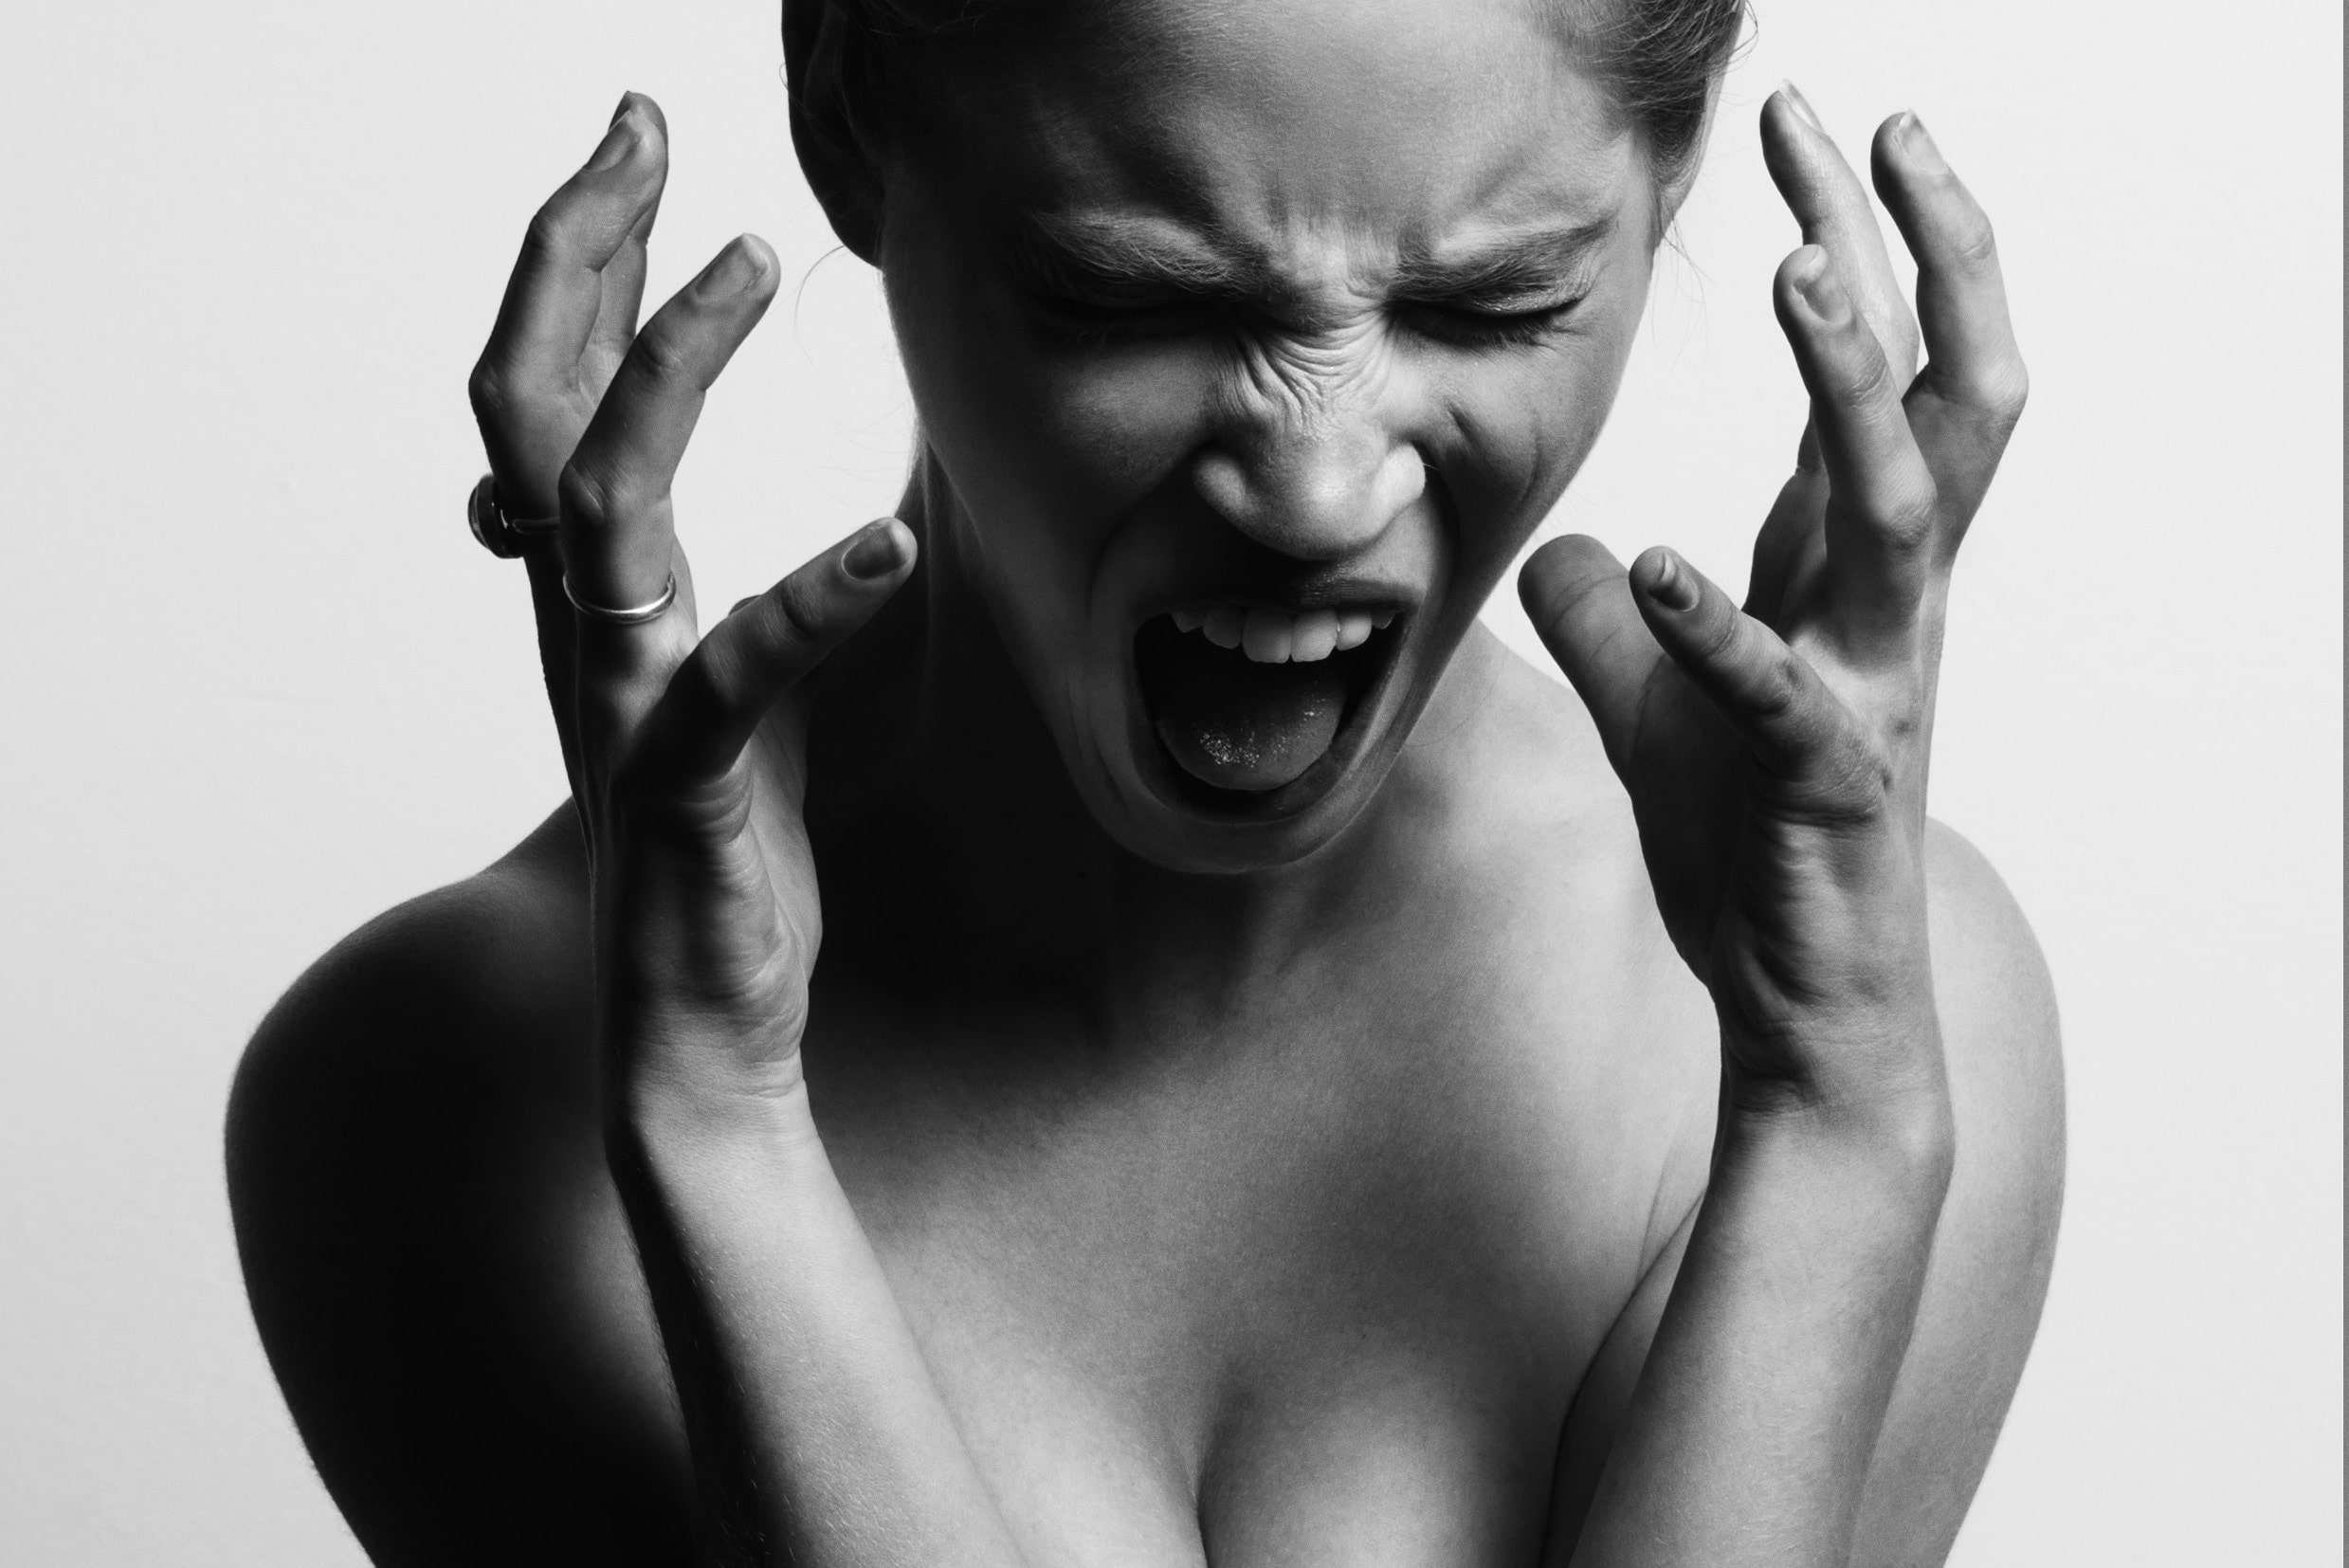 greyscale photo of a woman screaming with stress, her hands raised to her face - - workplace wellbeing workshops - stress management and resilience workshops